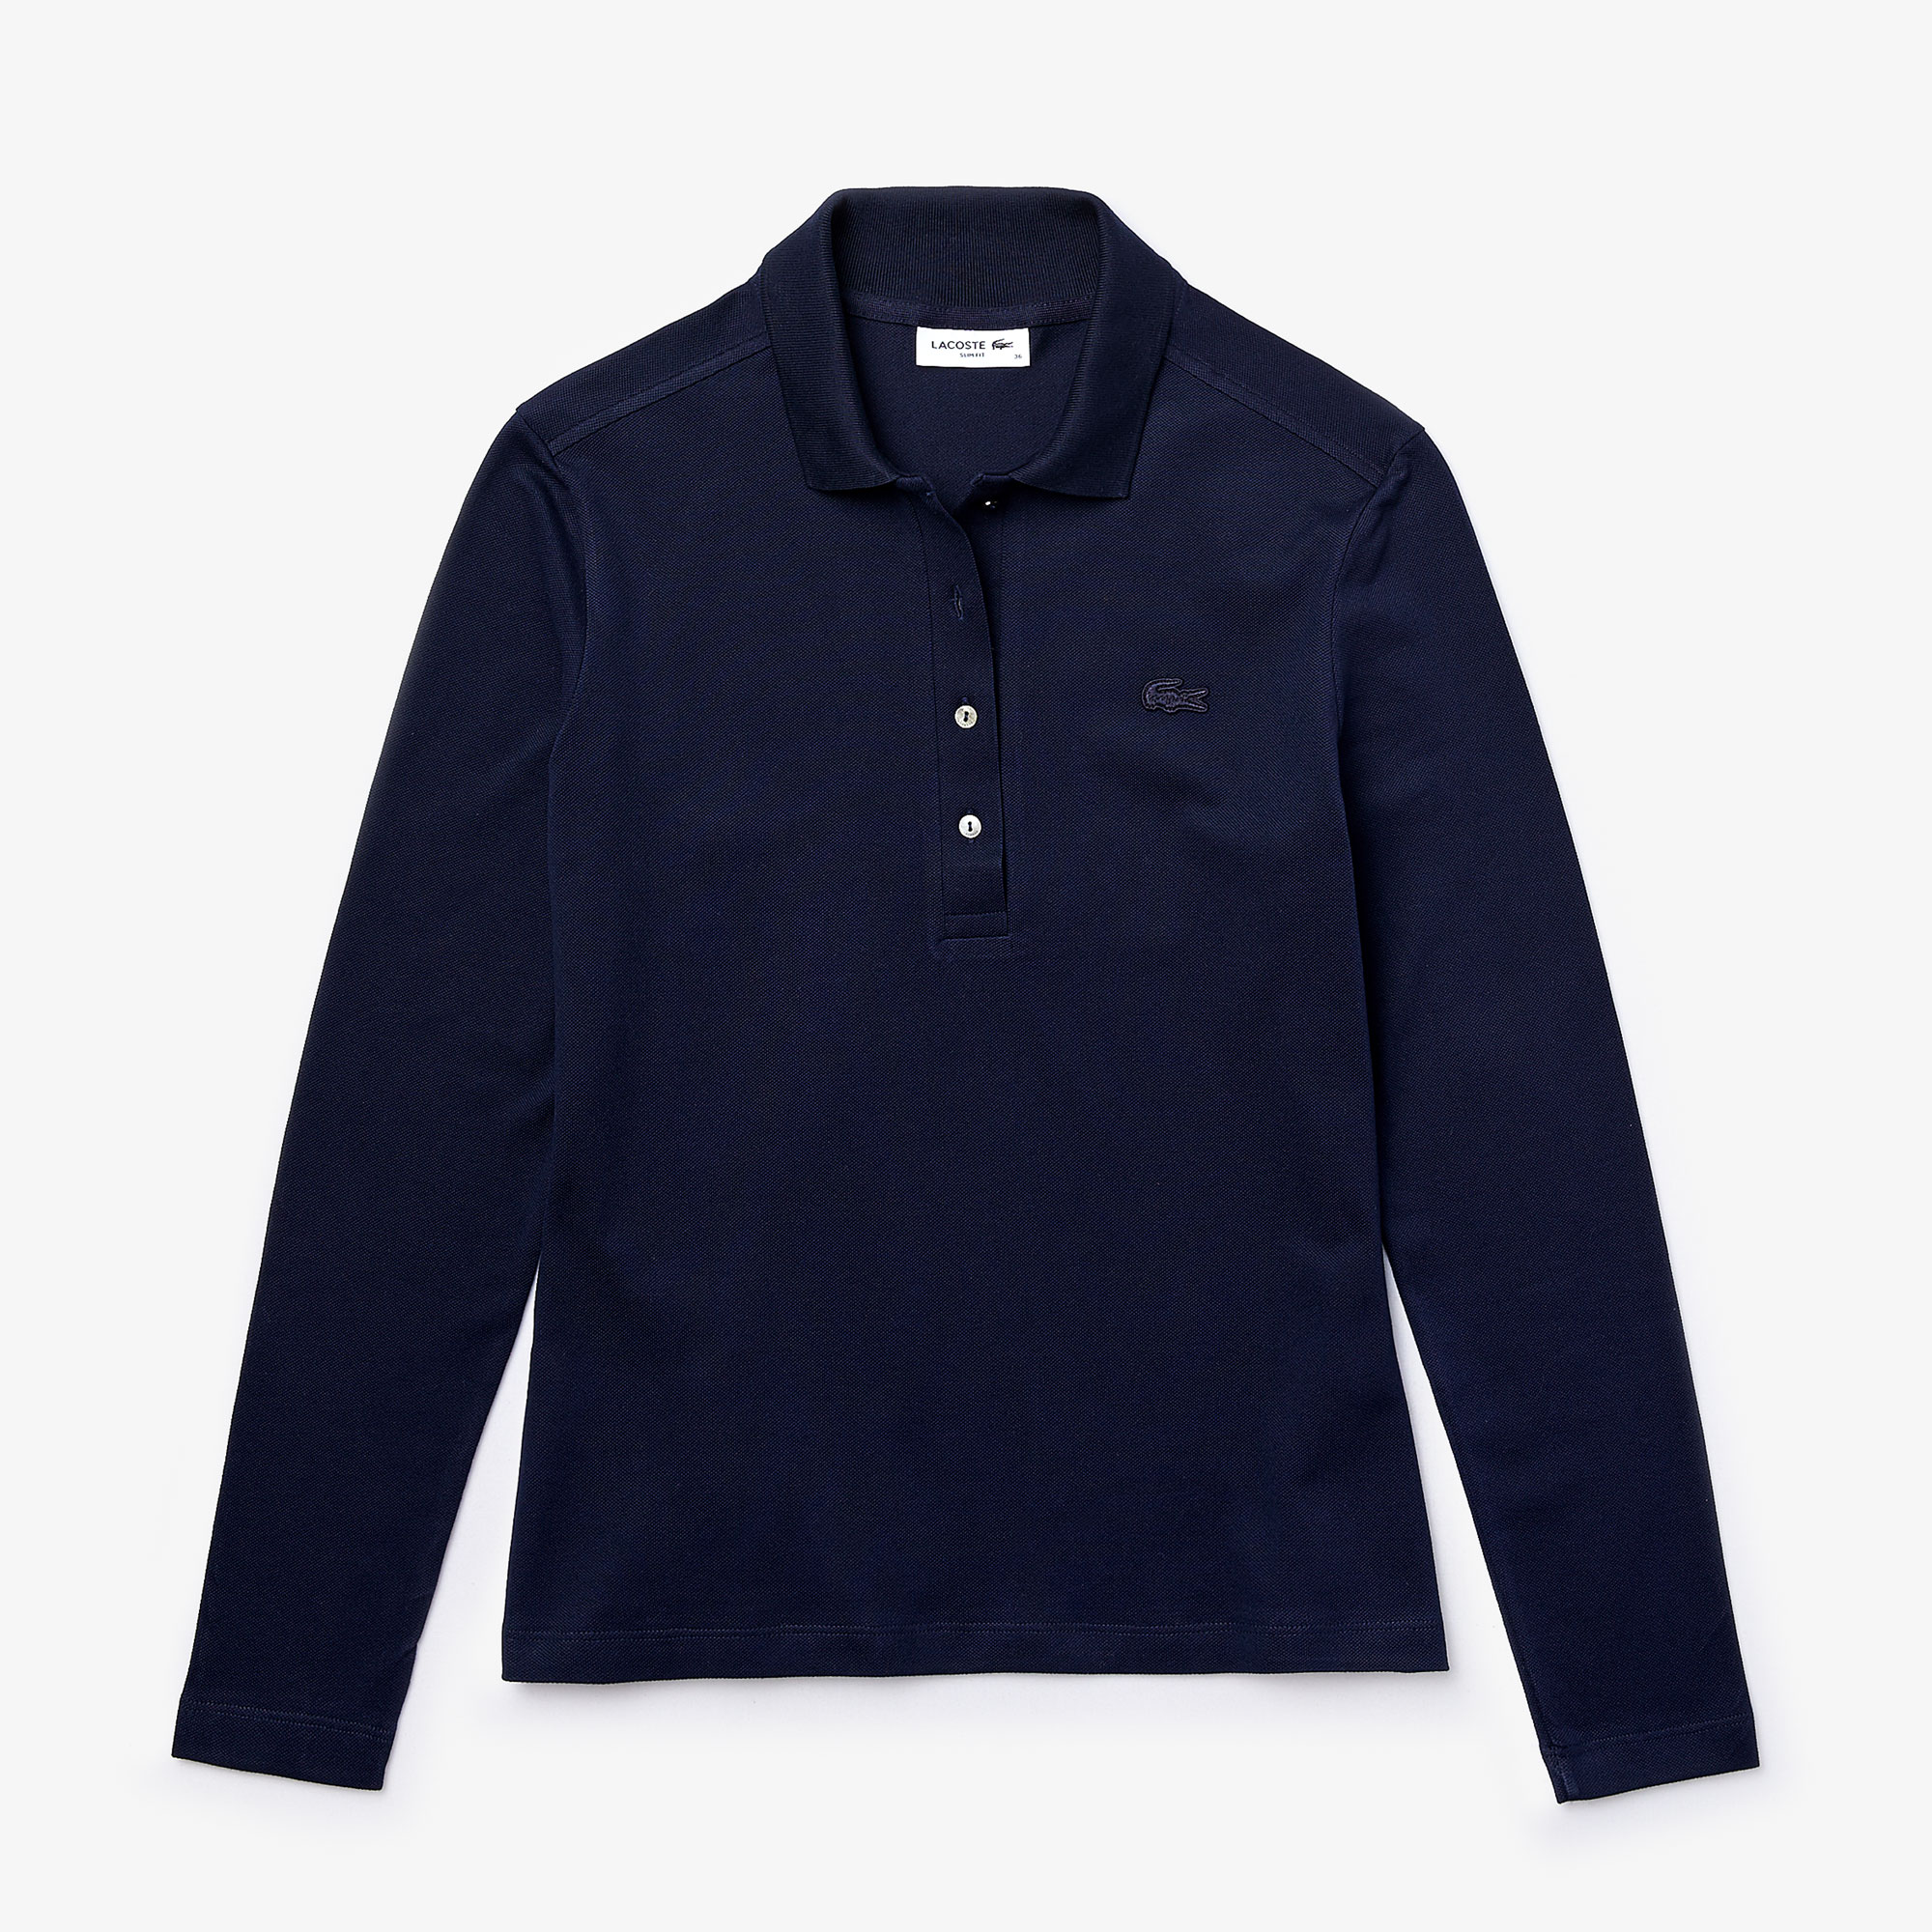 Damen LACOSTE Poloshirt in Stretch-Piqué